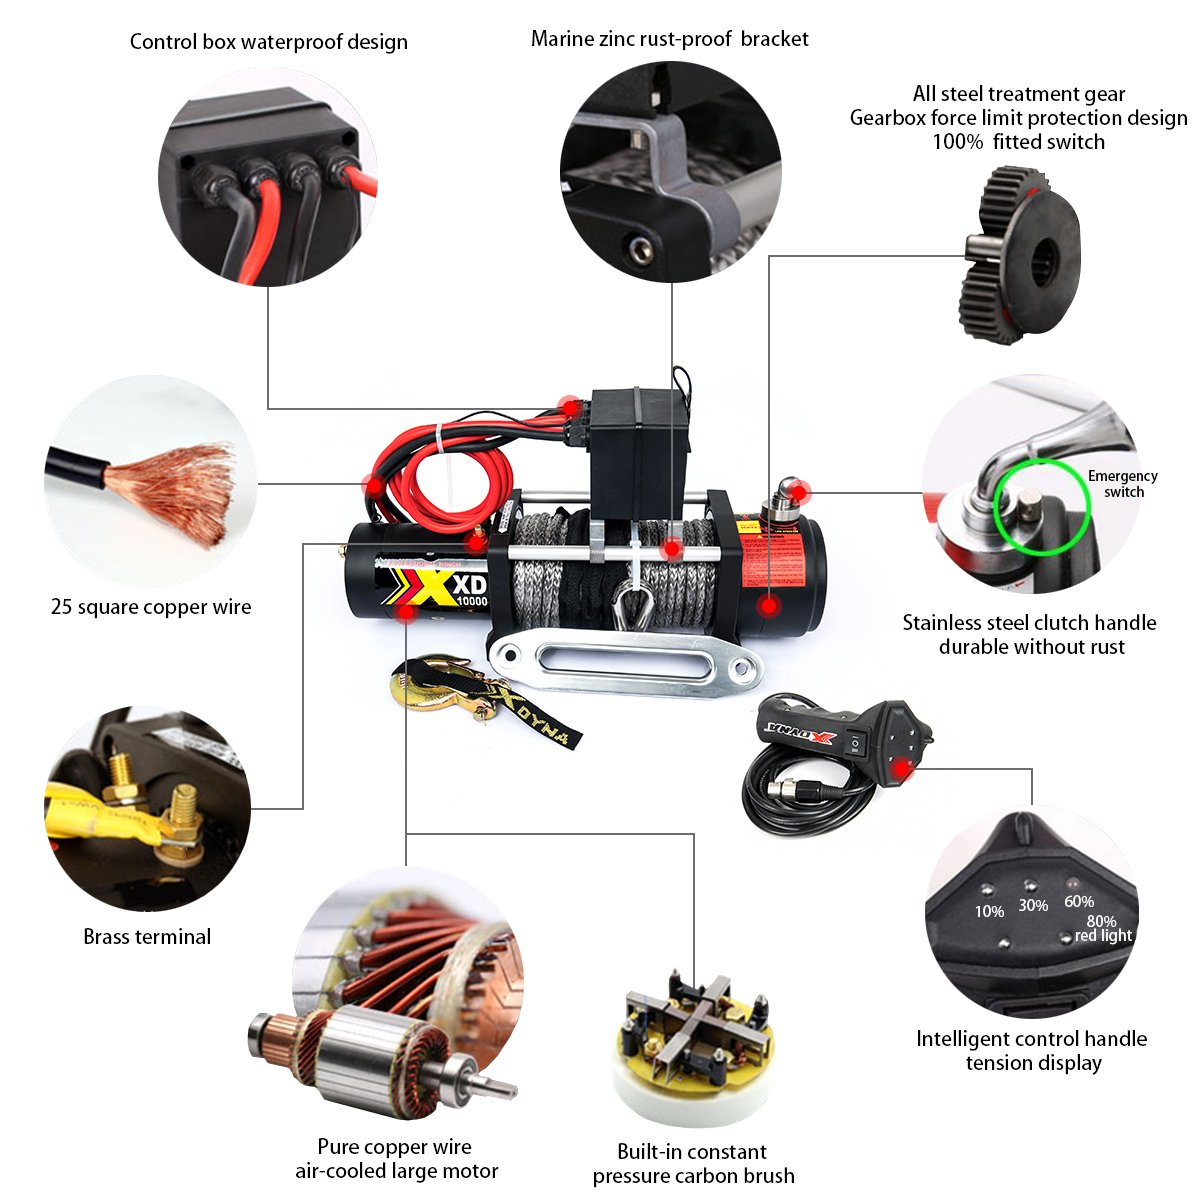 Wire Cable 6.6HP Motor High Speed 10000lbs Waterproof Winch With Adjust Torque Limited Protector 100/% Engaged Stainless Clutch Used To SUV Jeep Intelligent Remote Handle Showing Load Red Warning